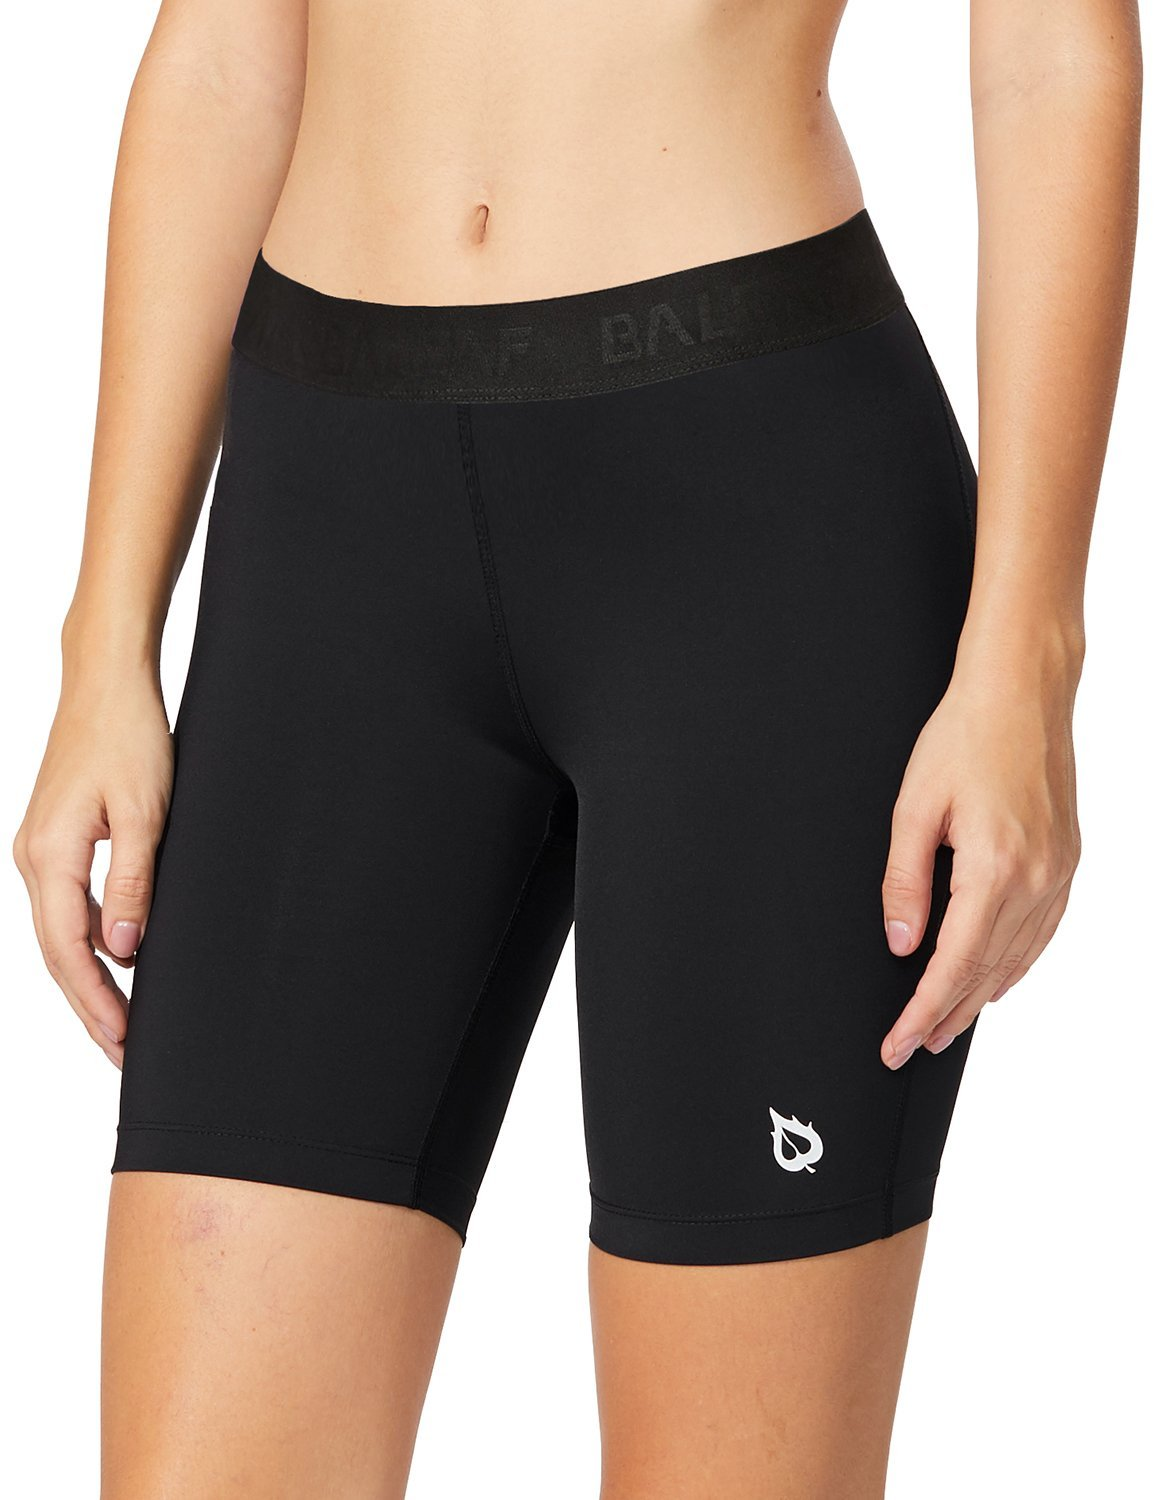 Baleaf Women's 7-Inch Active Fitness Compression Shorts Black Size S by Baleaf